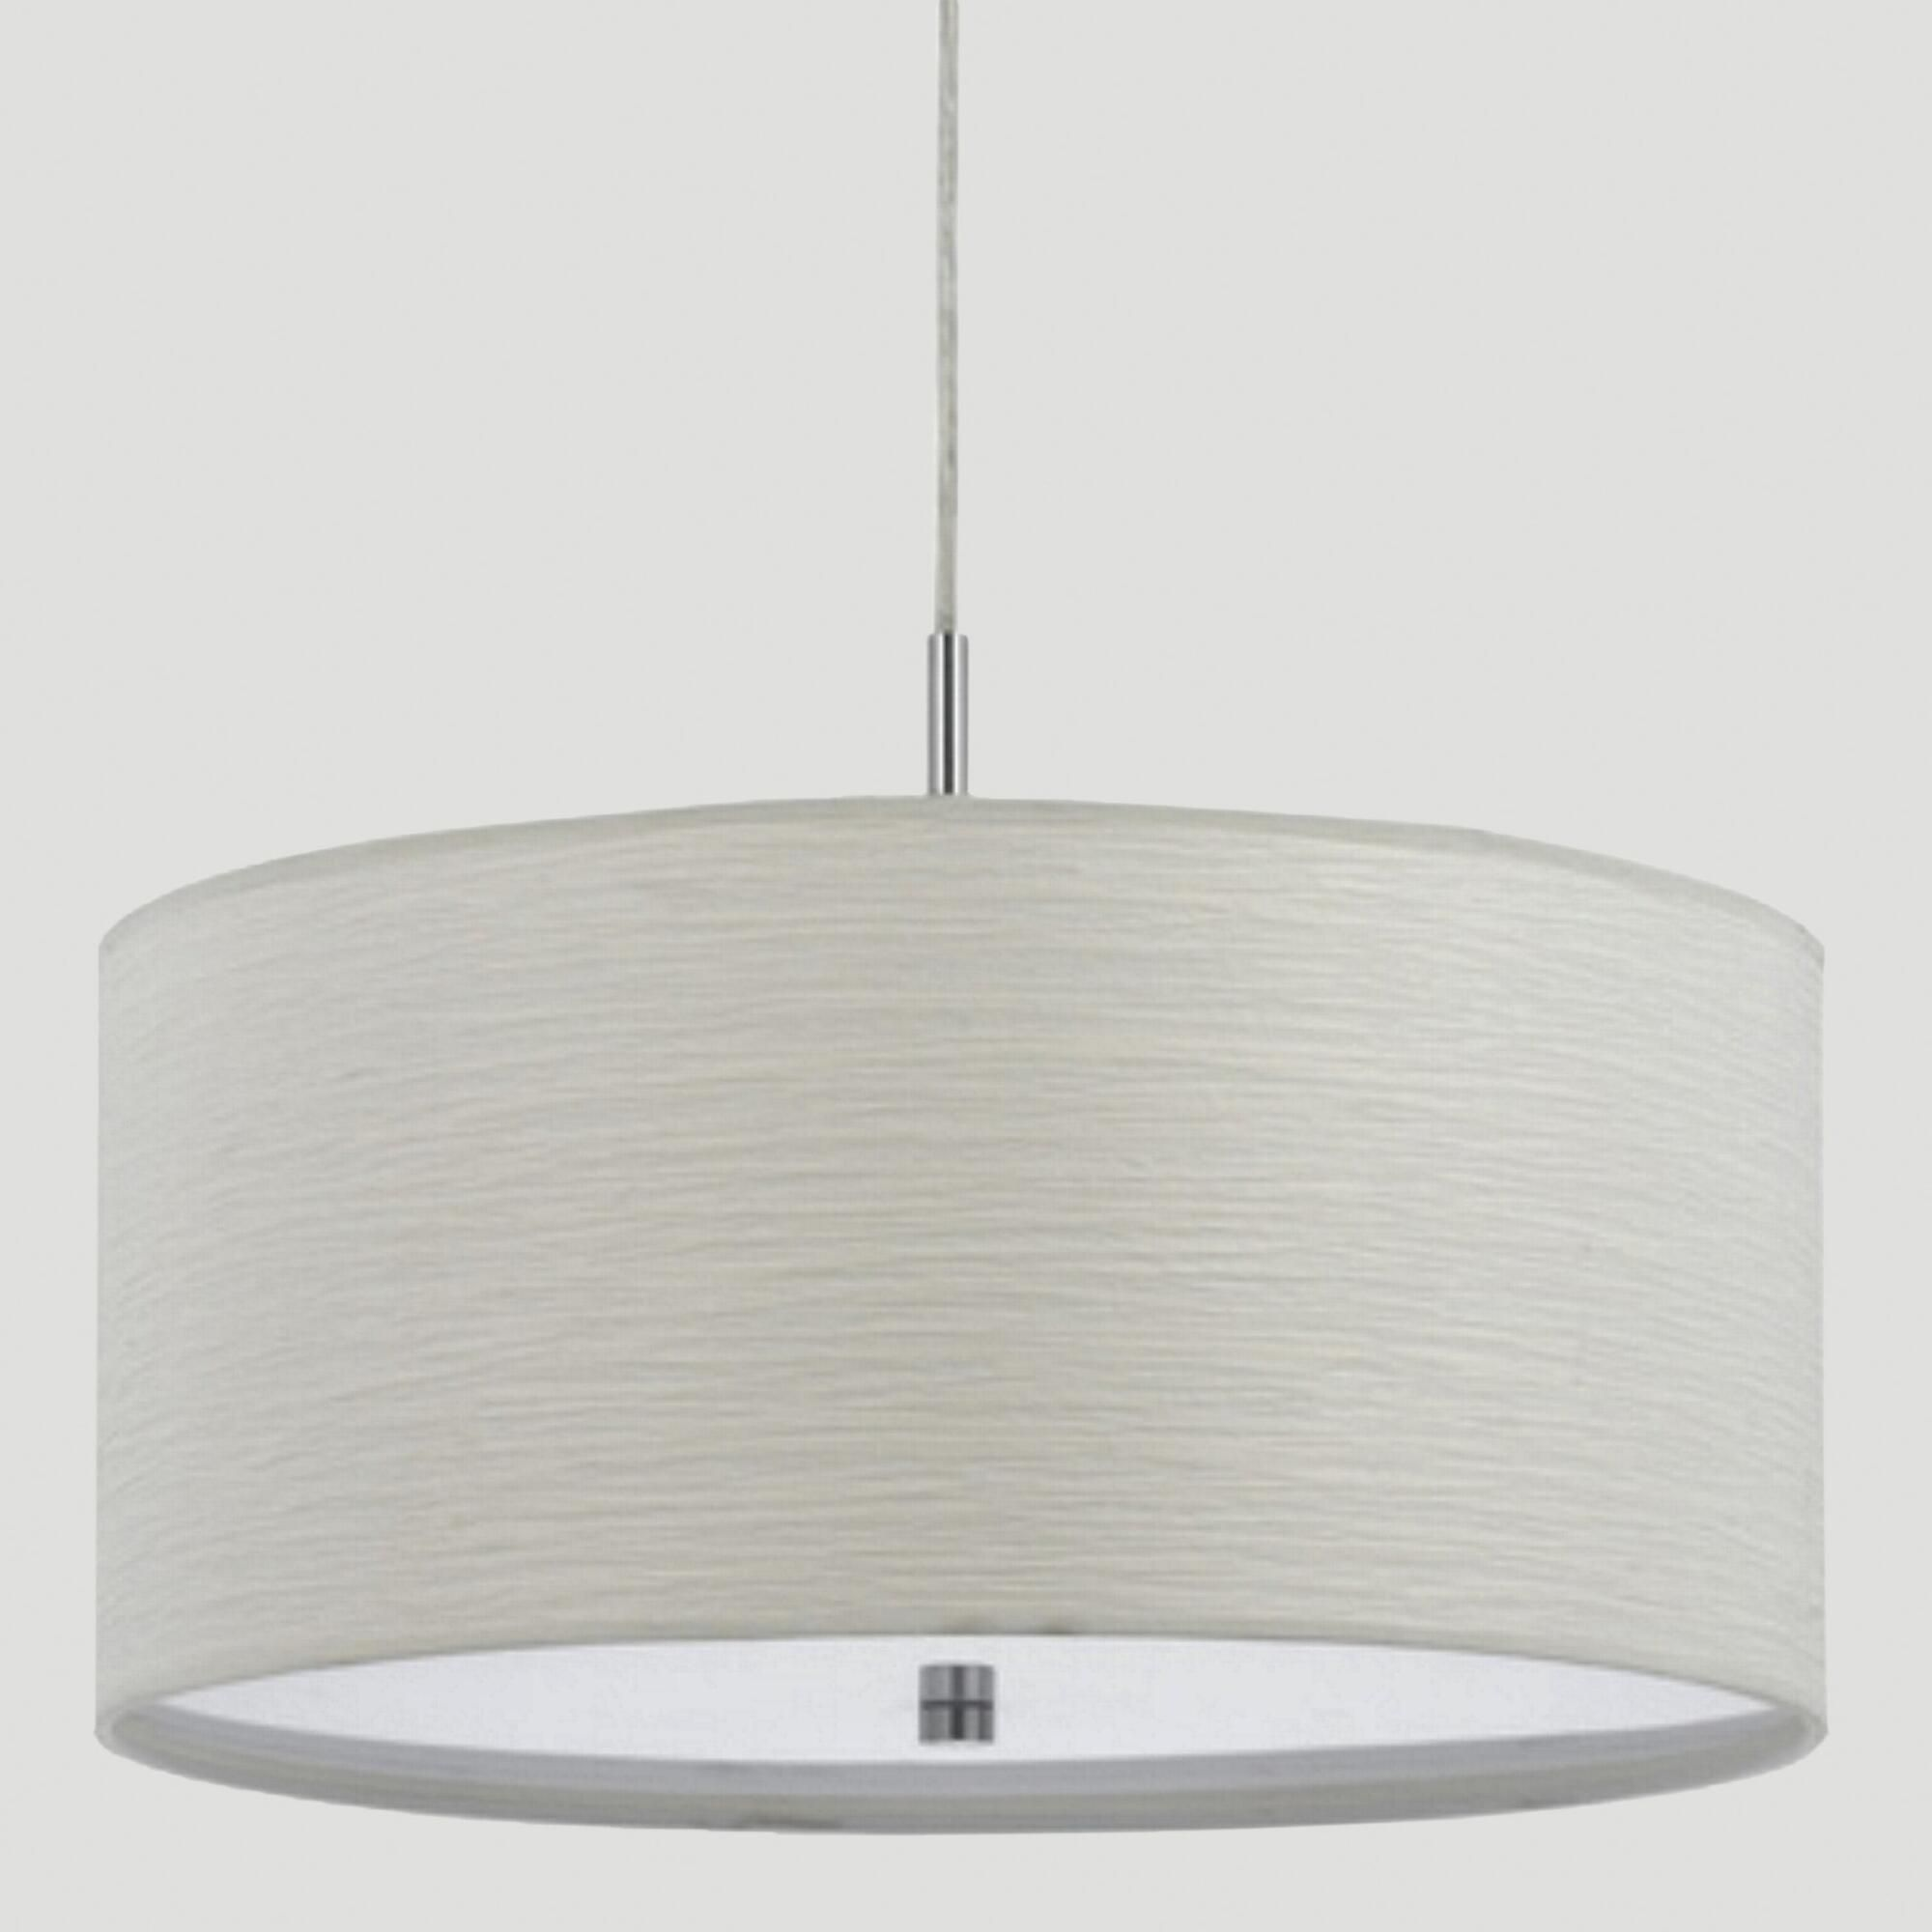 Defined By Clean White Lines Our Billie Pendant Lamp Makes A Chic Statement In Any